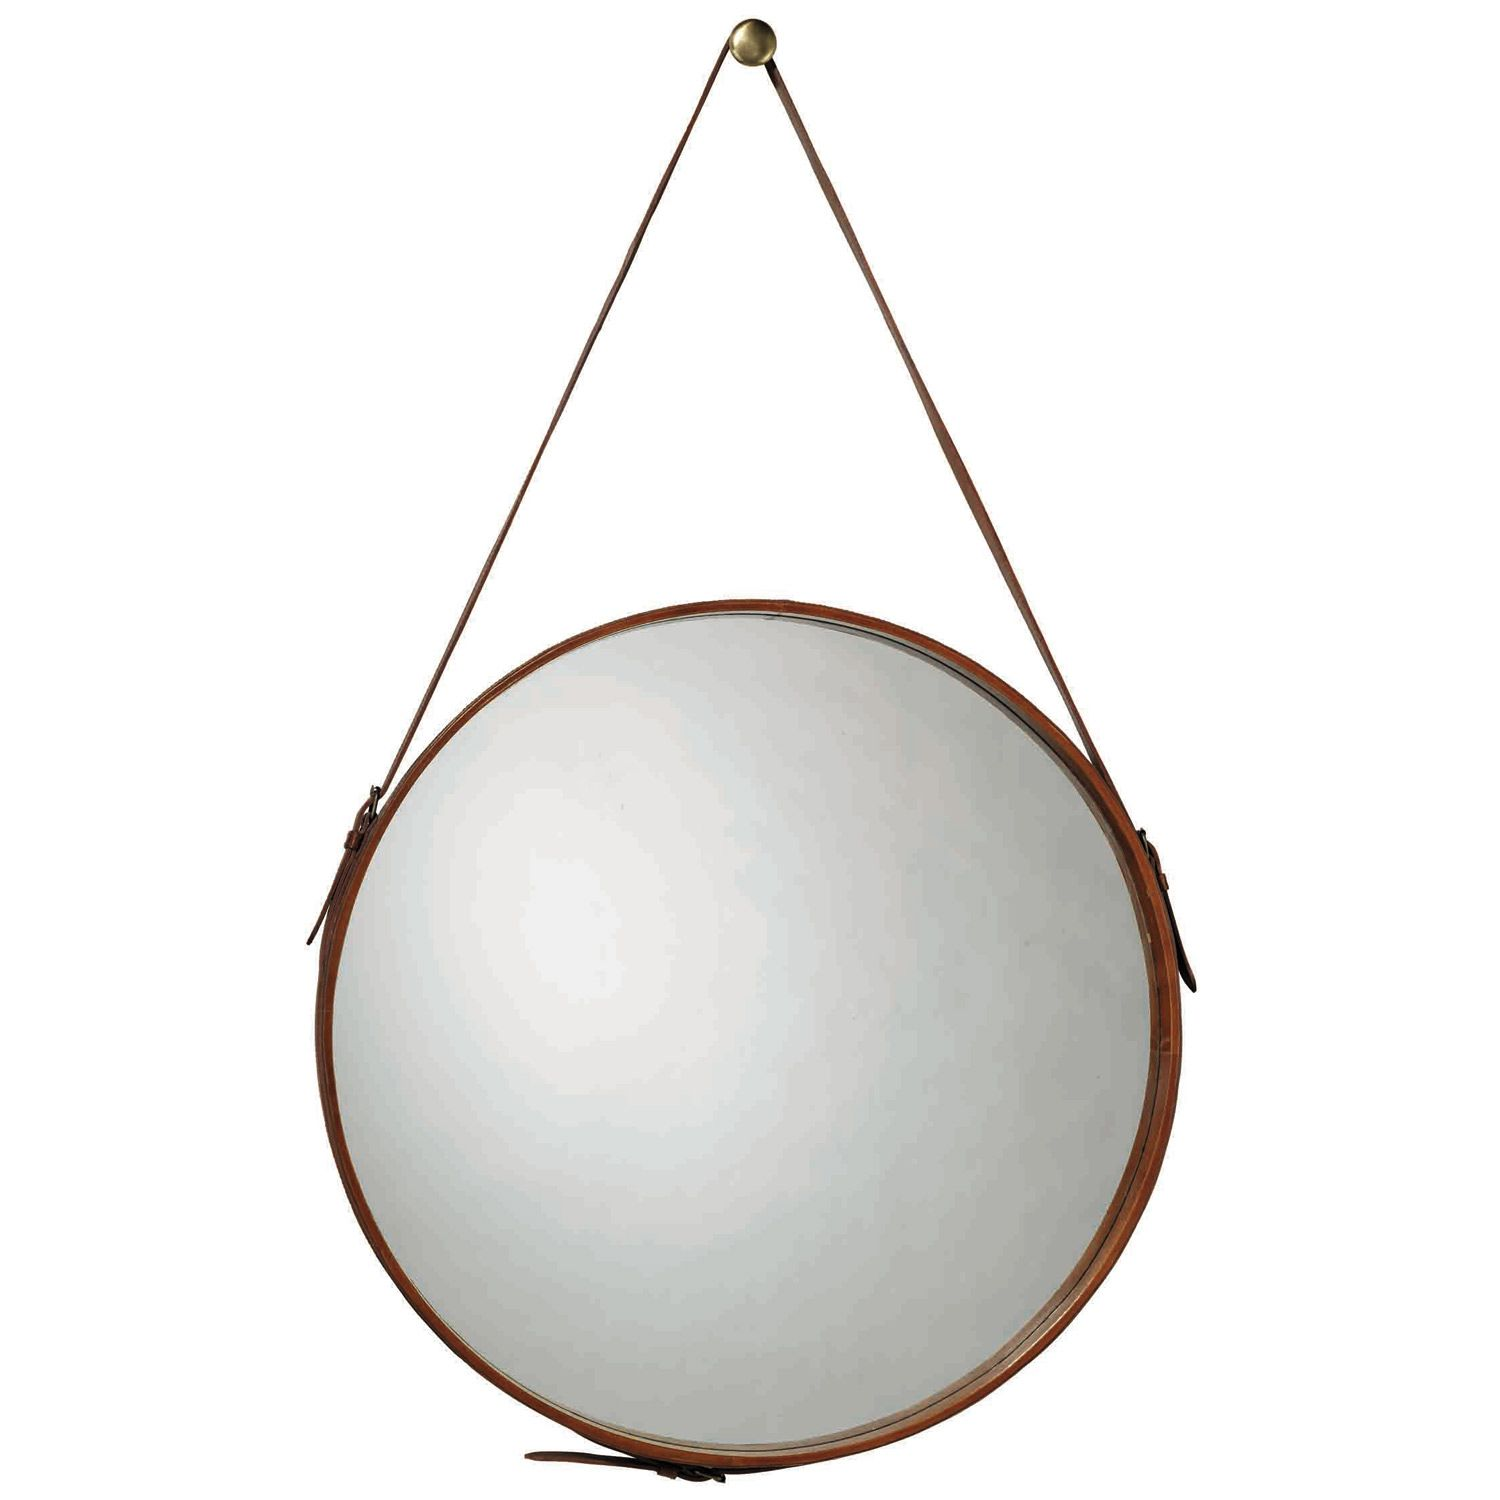 Jamie young round leather large mirror zincdoor ohayo mountain jamie young round leather large mirror zincdoor amipublicfo Gallery